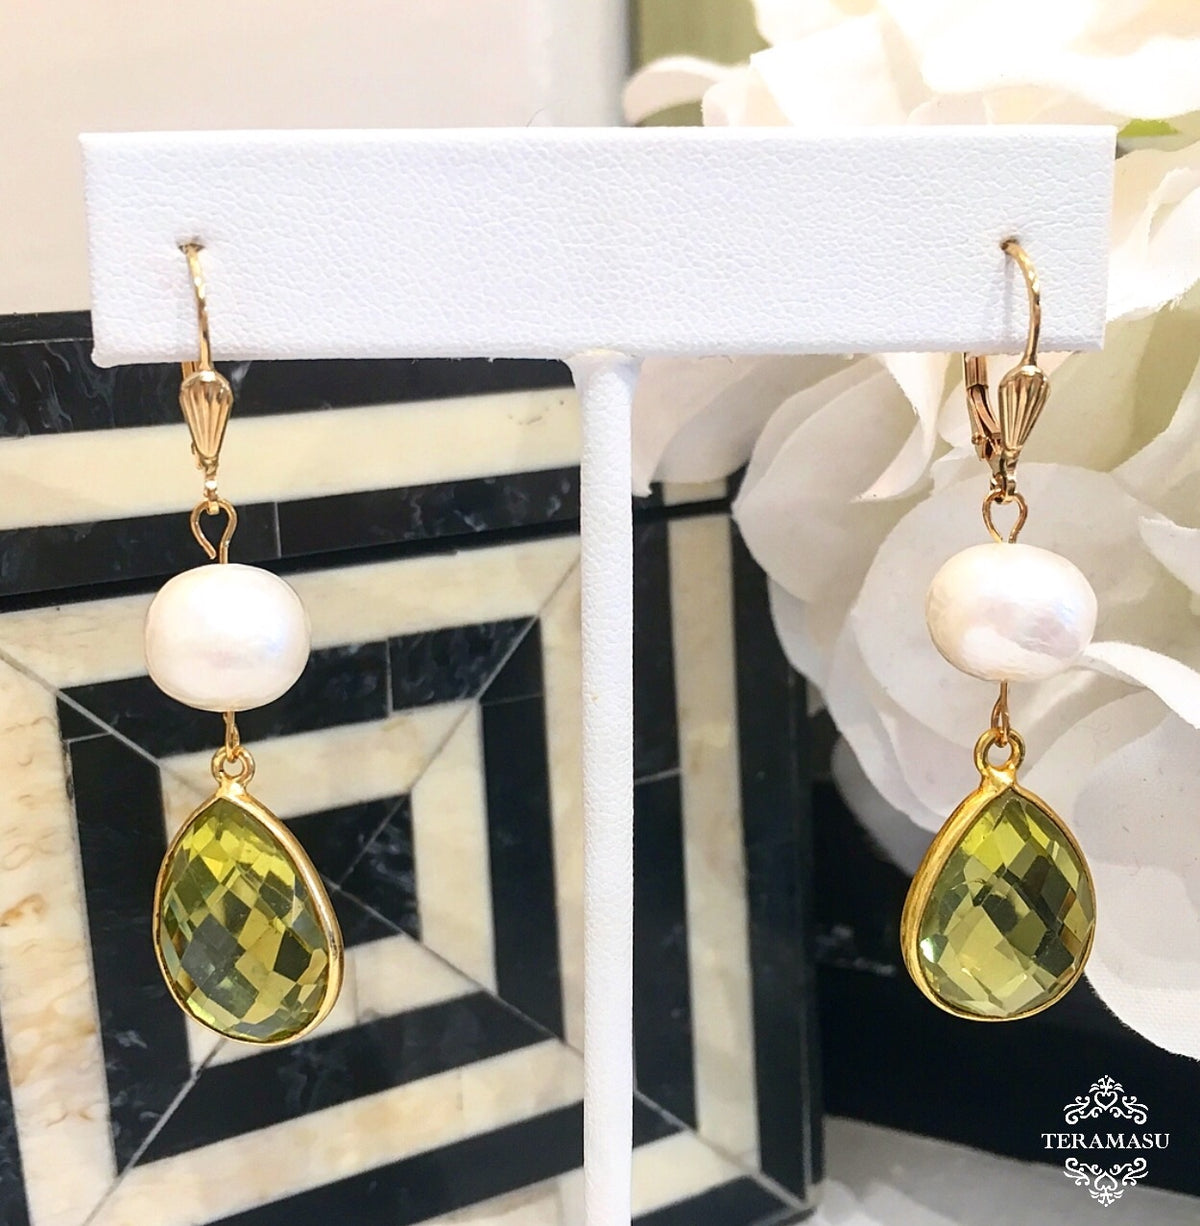 Chic Peek: Gorgeously Classic & New, Handmade Designer Teramasu Lemon Topaz and Freshwater Pearl Dangle Earrings